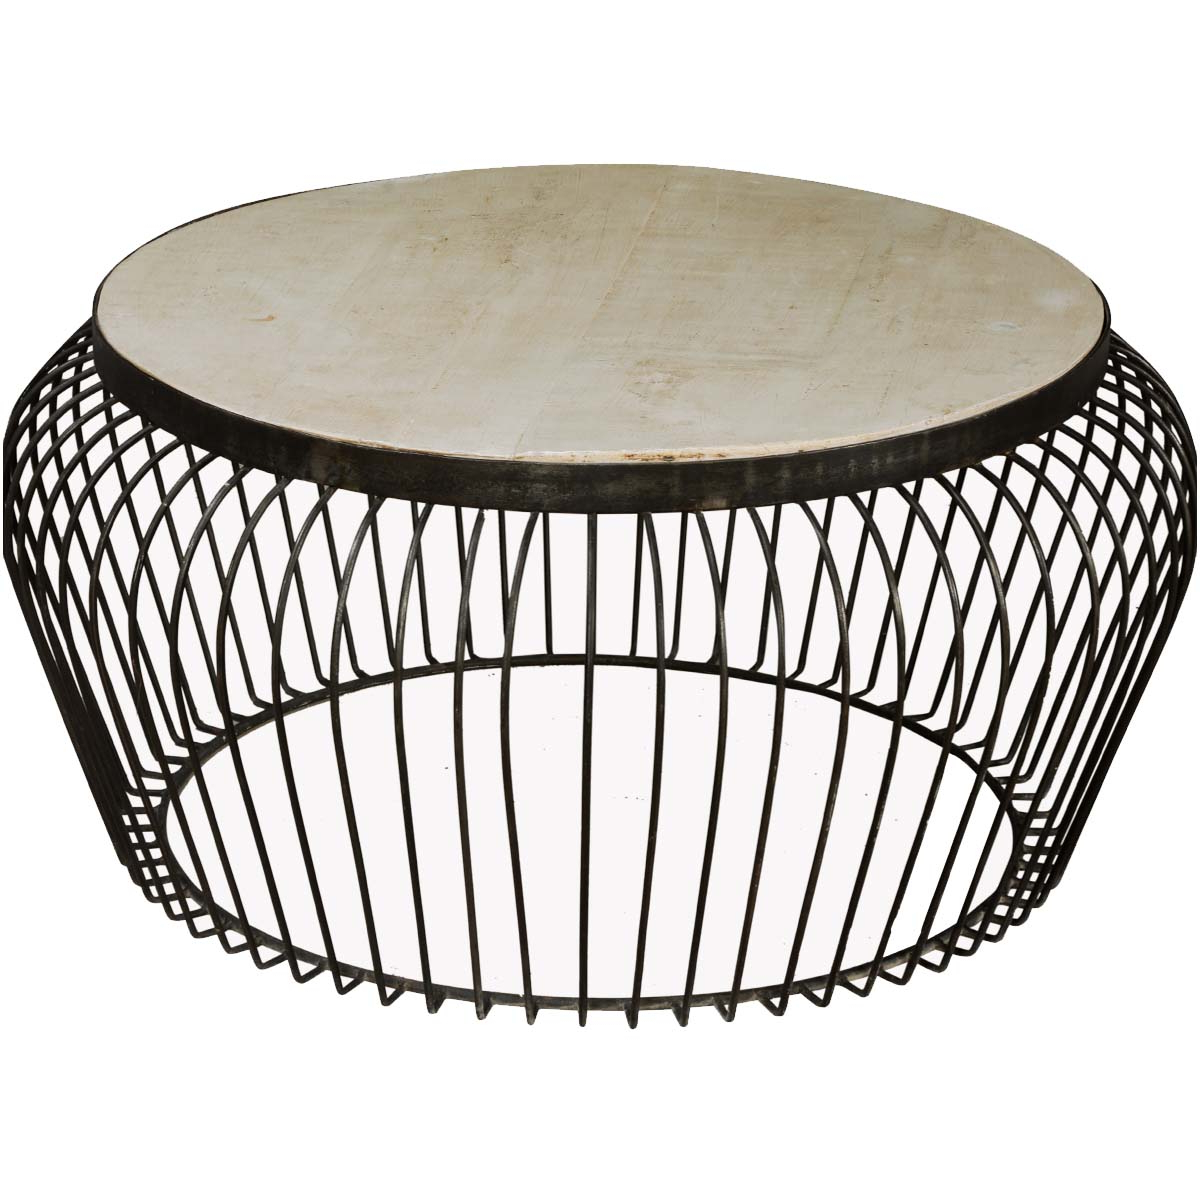 "Swell Round Coffee Tables Intended For Most Popular Wire Basket Mango Wood & Iron 38"" Round Coffee Table (View 11 of 20)"